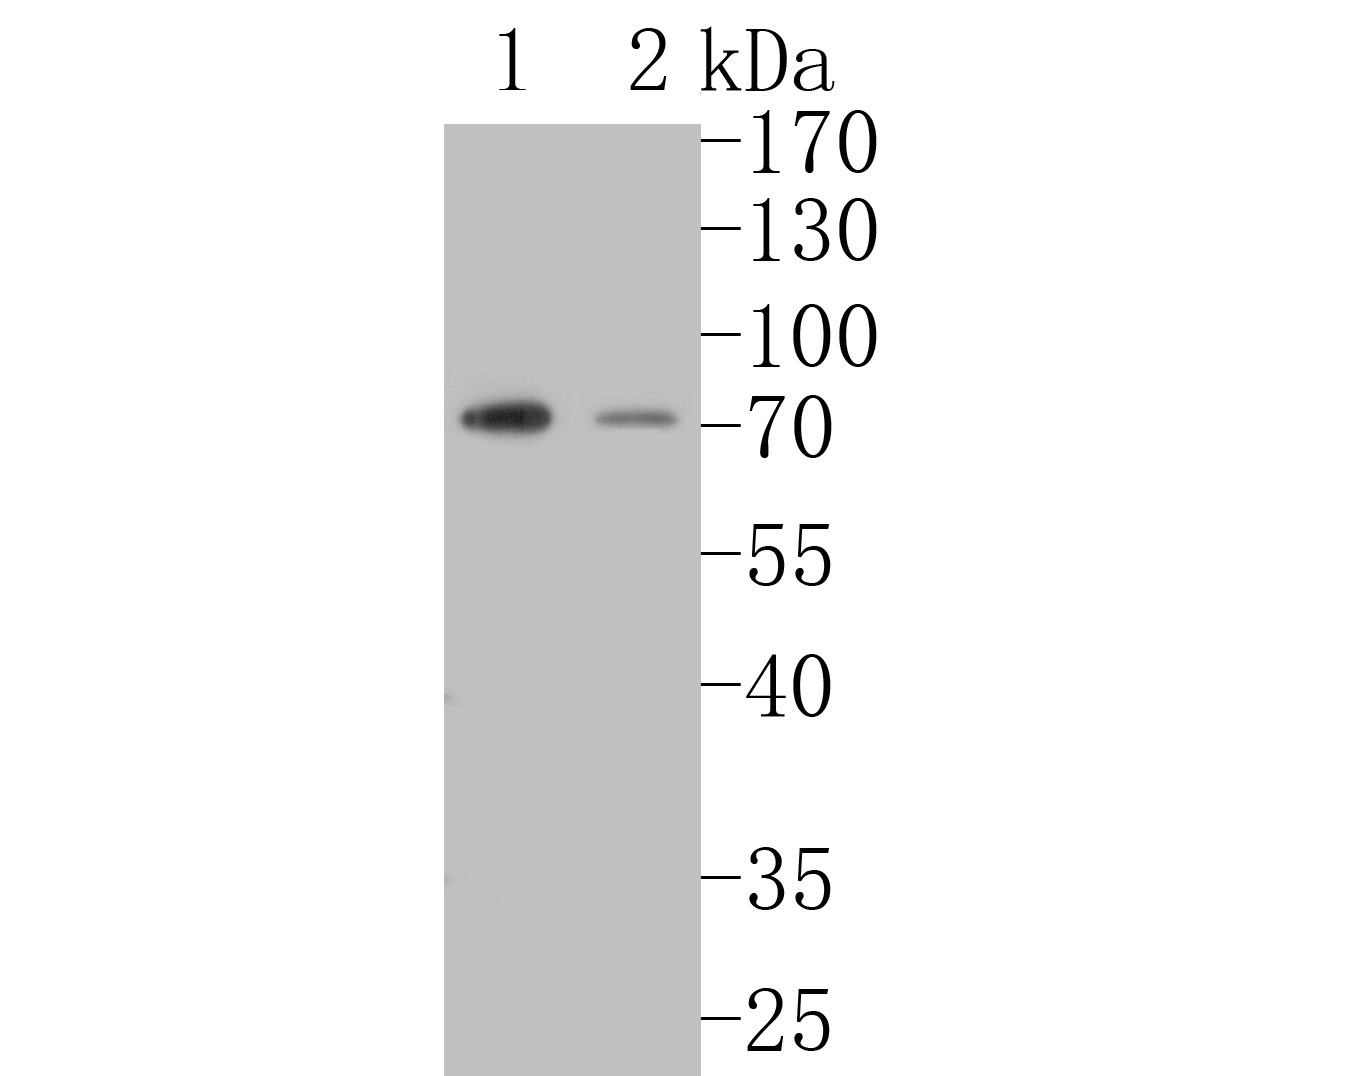 Western blot analysis of SLFN12 on different lysates. Proteins were transferred to a PVDF membrane and blocked with 5% BSA in PBS for 1 hour at room temperature. The primary antibody (ER1902-84, 1/500) was used in 5% BSA at room temperature for 2 hours. Goat Anti-Rabbit IgG - HRP Secondary Antibody (HA1001) at 1:5,000 dilution was used for 1 hour at room temperature.<br />  Positive control: <br />  Lane 1: U937 cell lysate<br />  Lane 2: HL-60 cell lysate